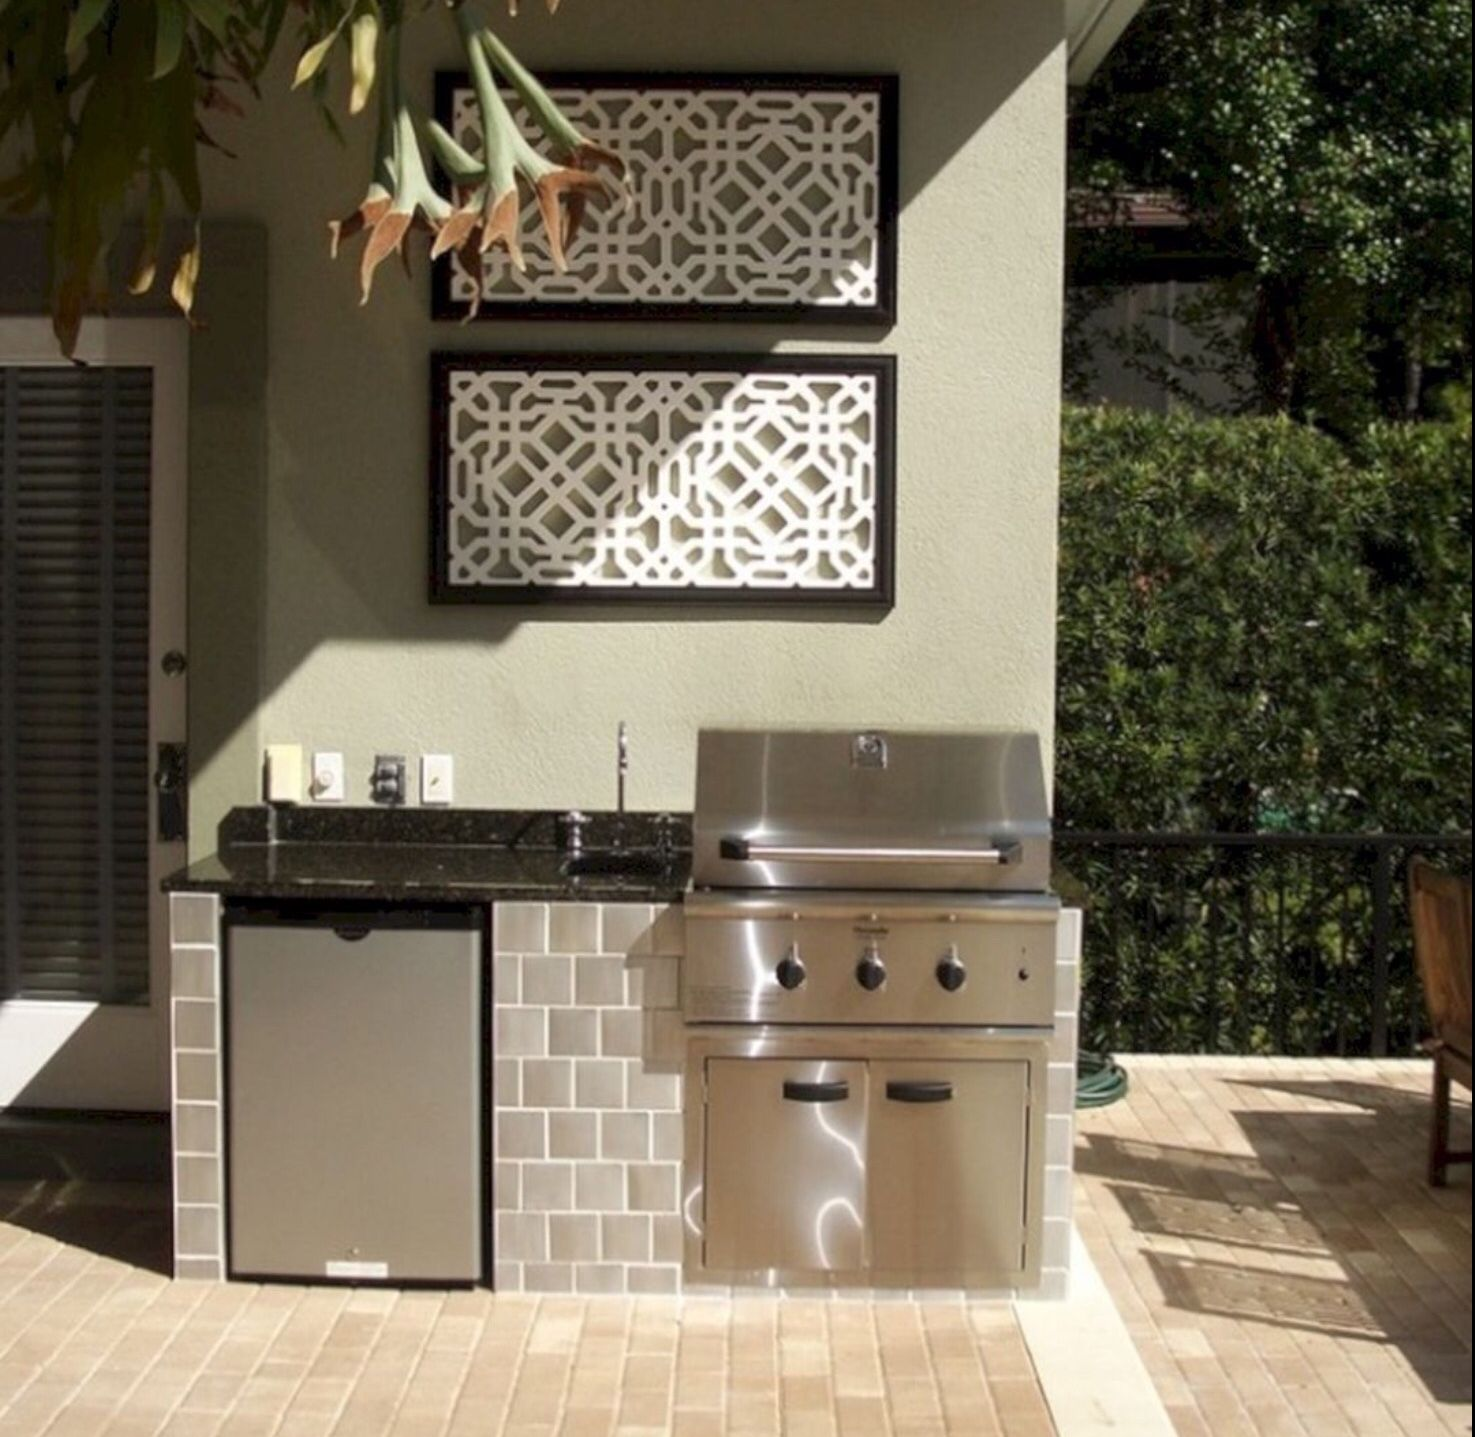 Frig Veg Sink Grill Small Outdoor Kitchens Outdoor Kitchen Plans Outdoor Kitchen